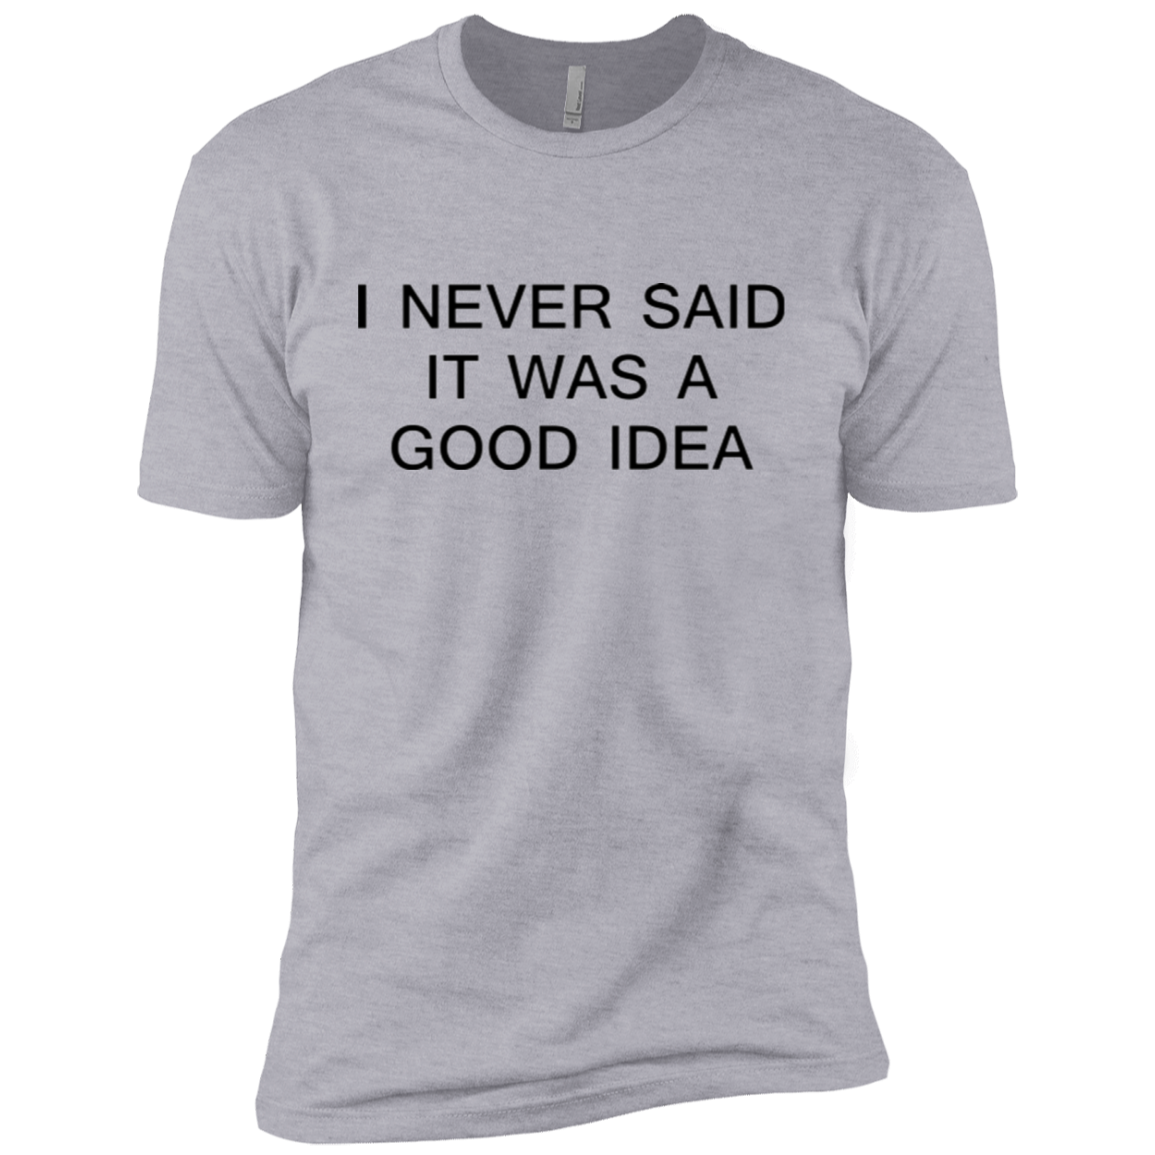 I Never Said it was a Good Idea Men's Classic Tee